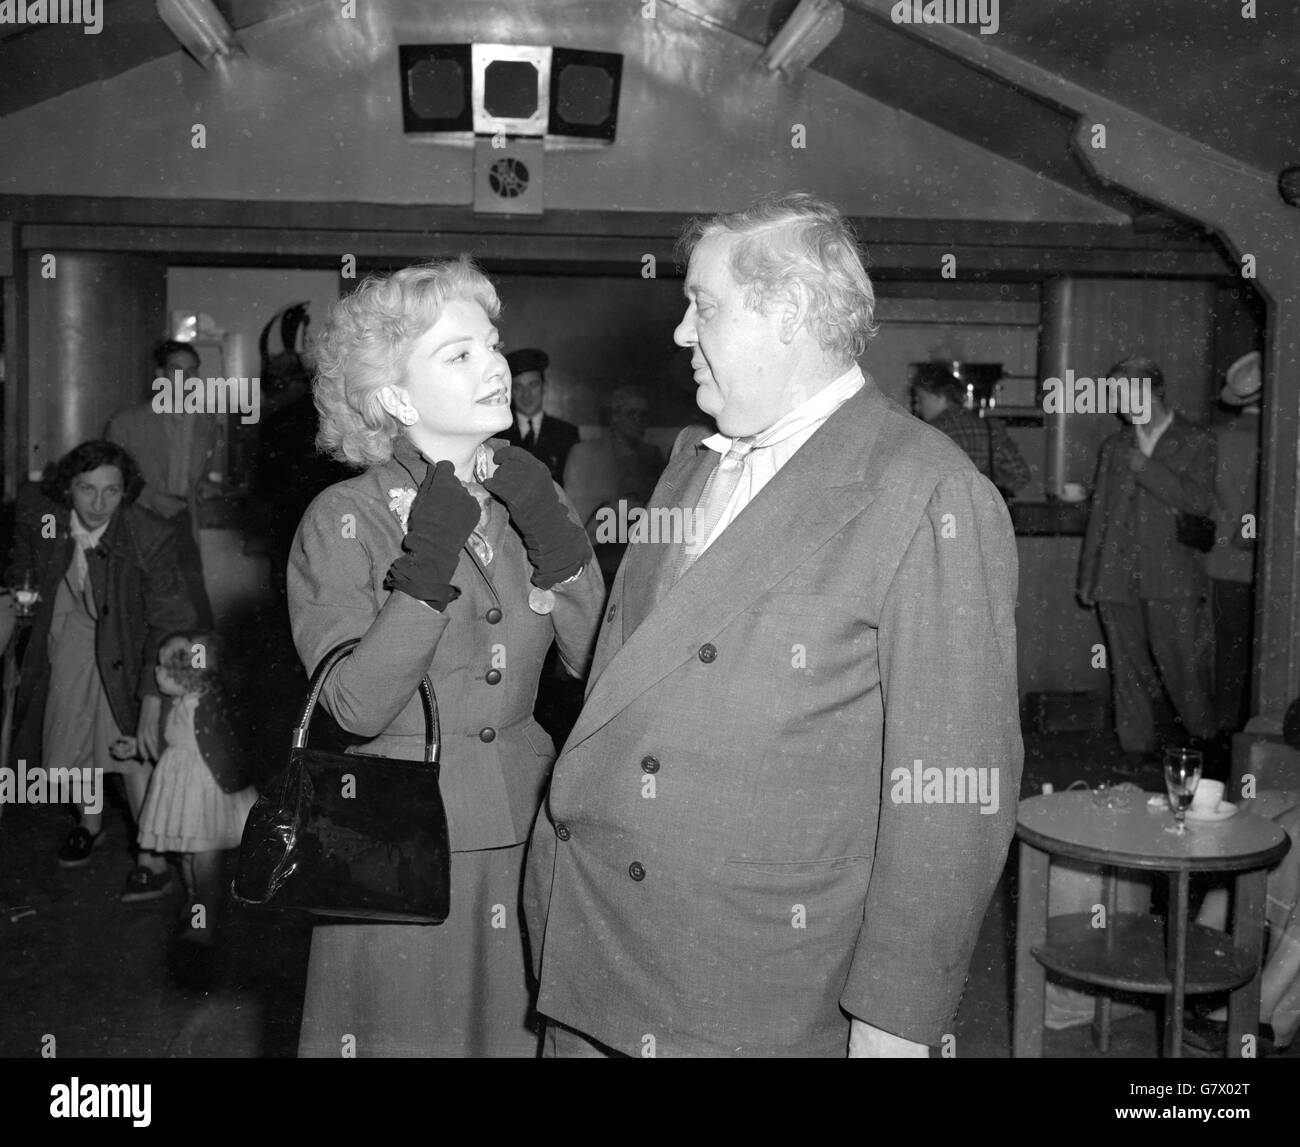 Entertainment - Anne Baxter and Charles Laughton - London Airport - Stock Image